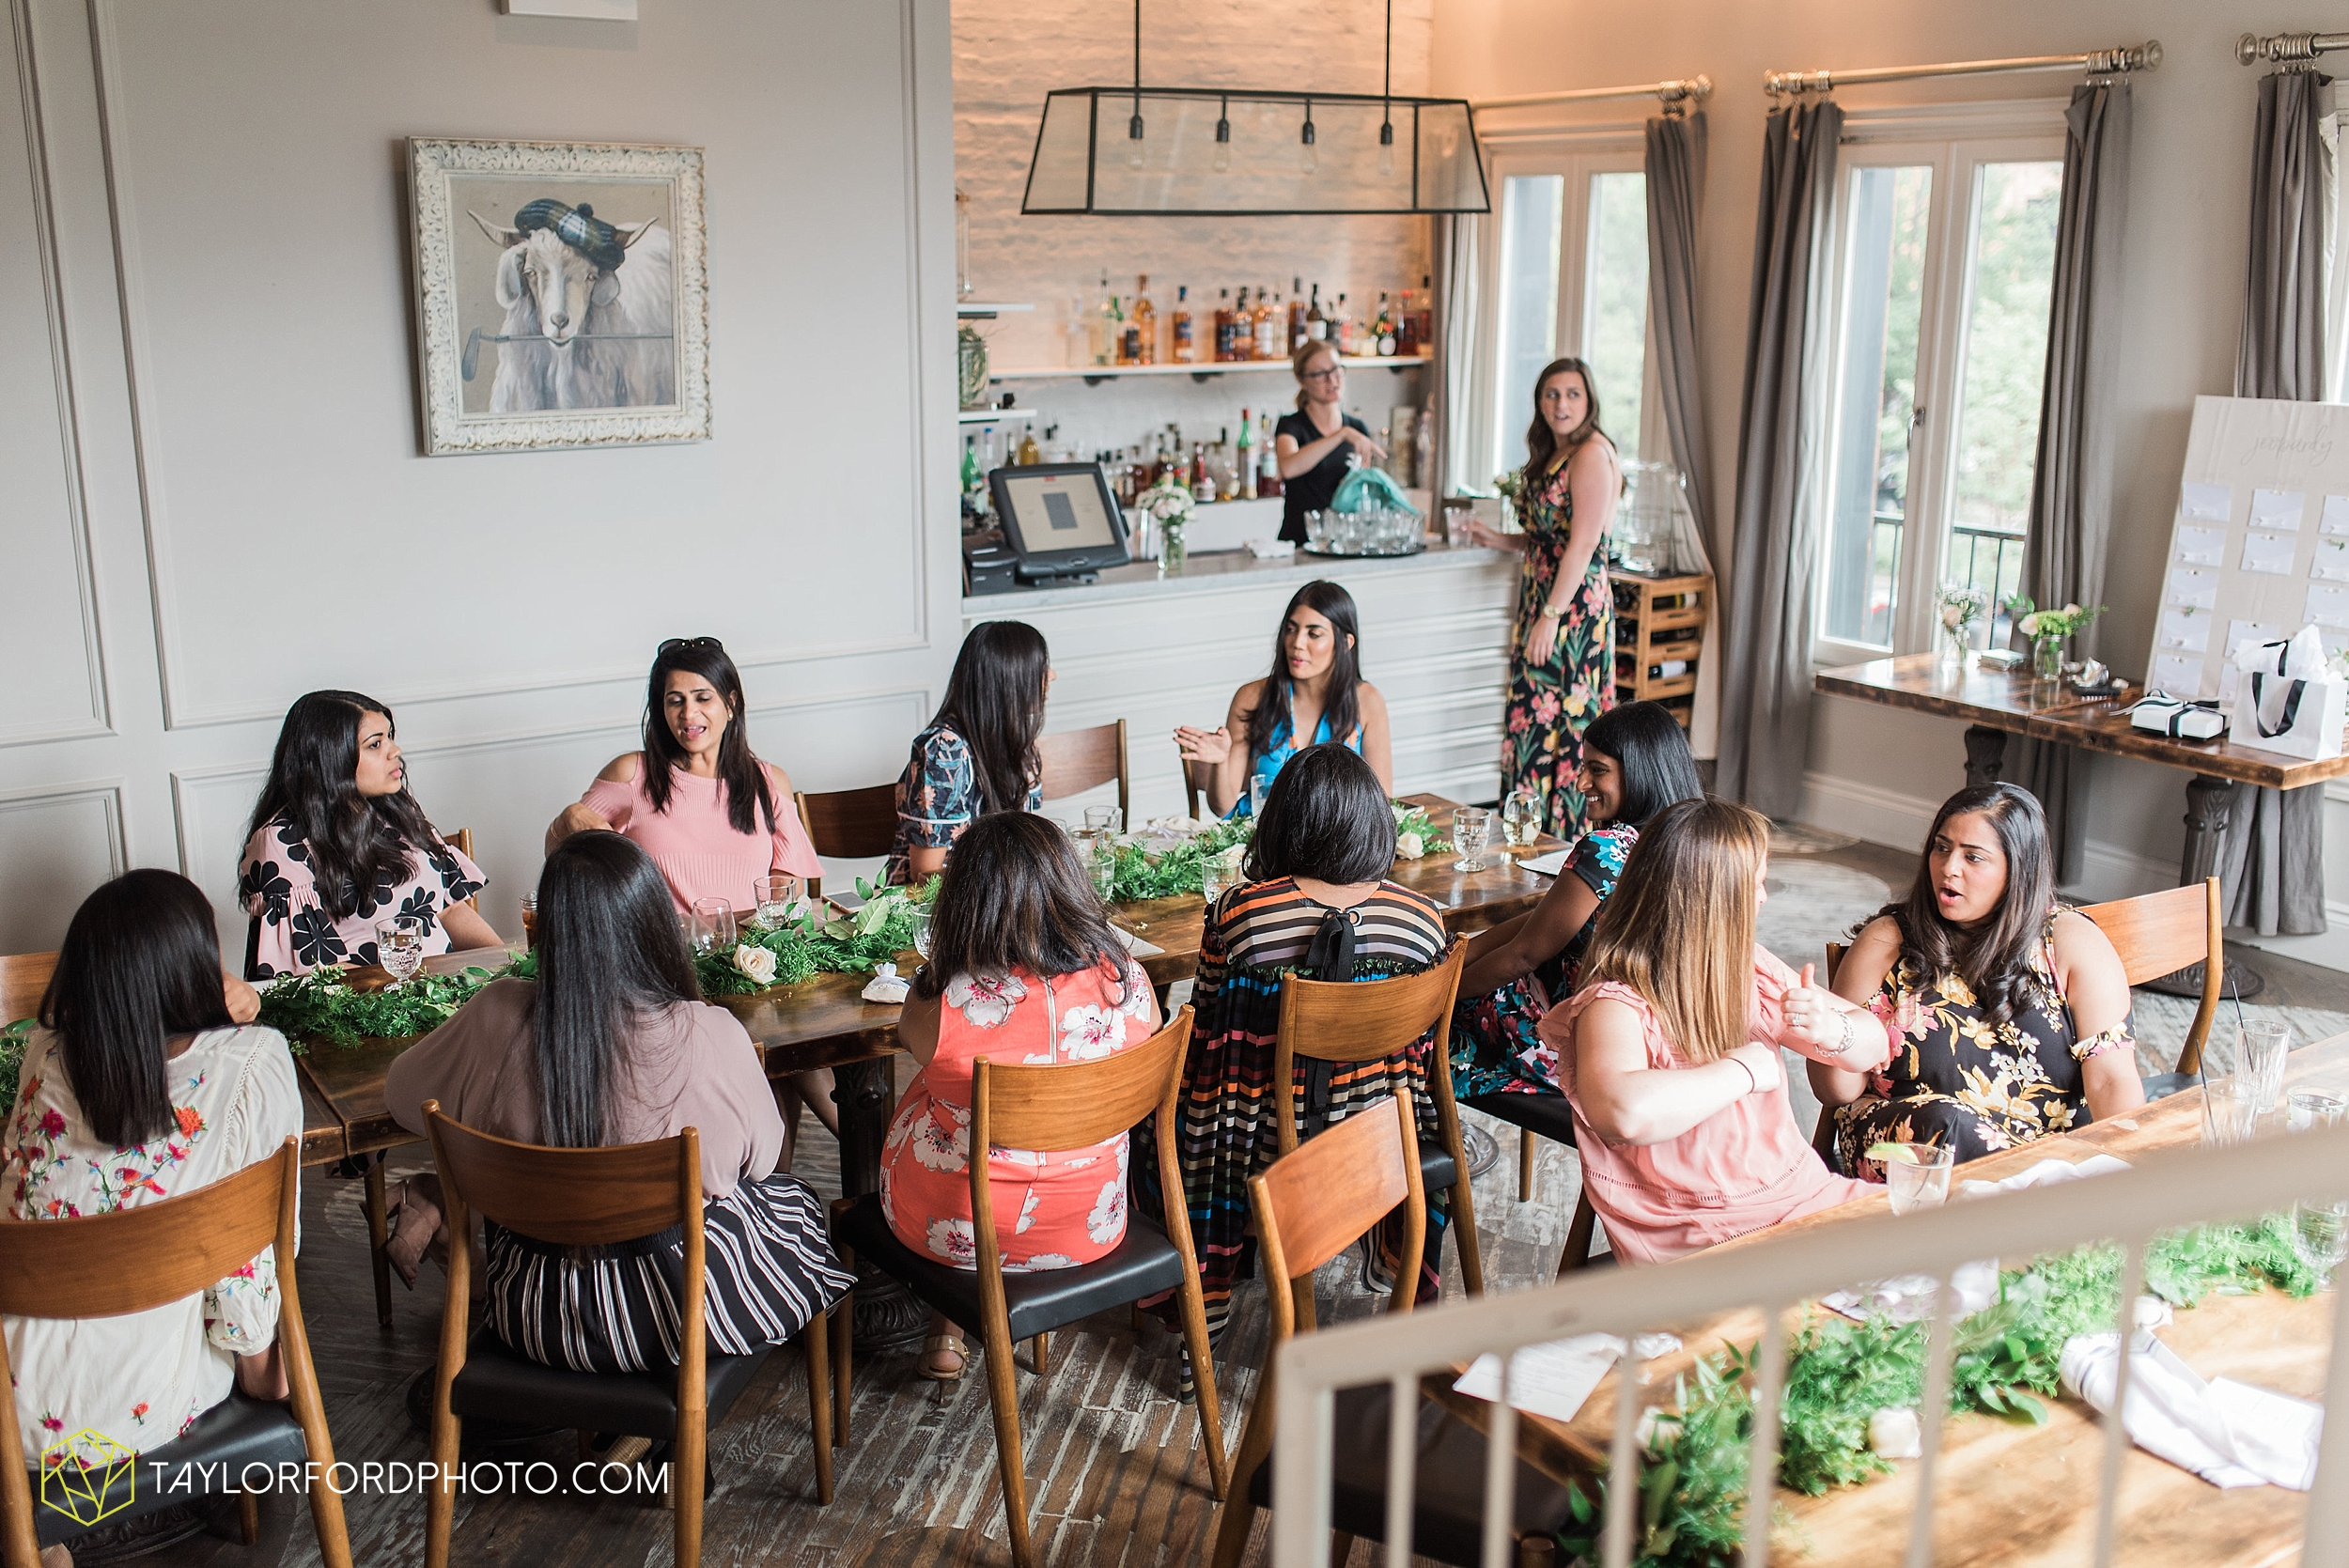 chicago-illinois-bridal-shower-wedding-engagement-photographer-Taylor-Ford-Photography-the-little-goat-diner-rooftop-indian-ceremony_5116.jpg